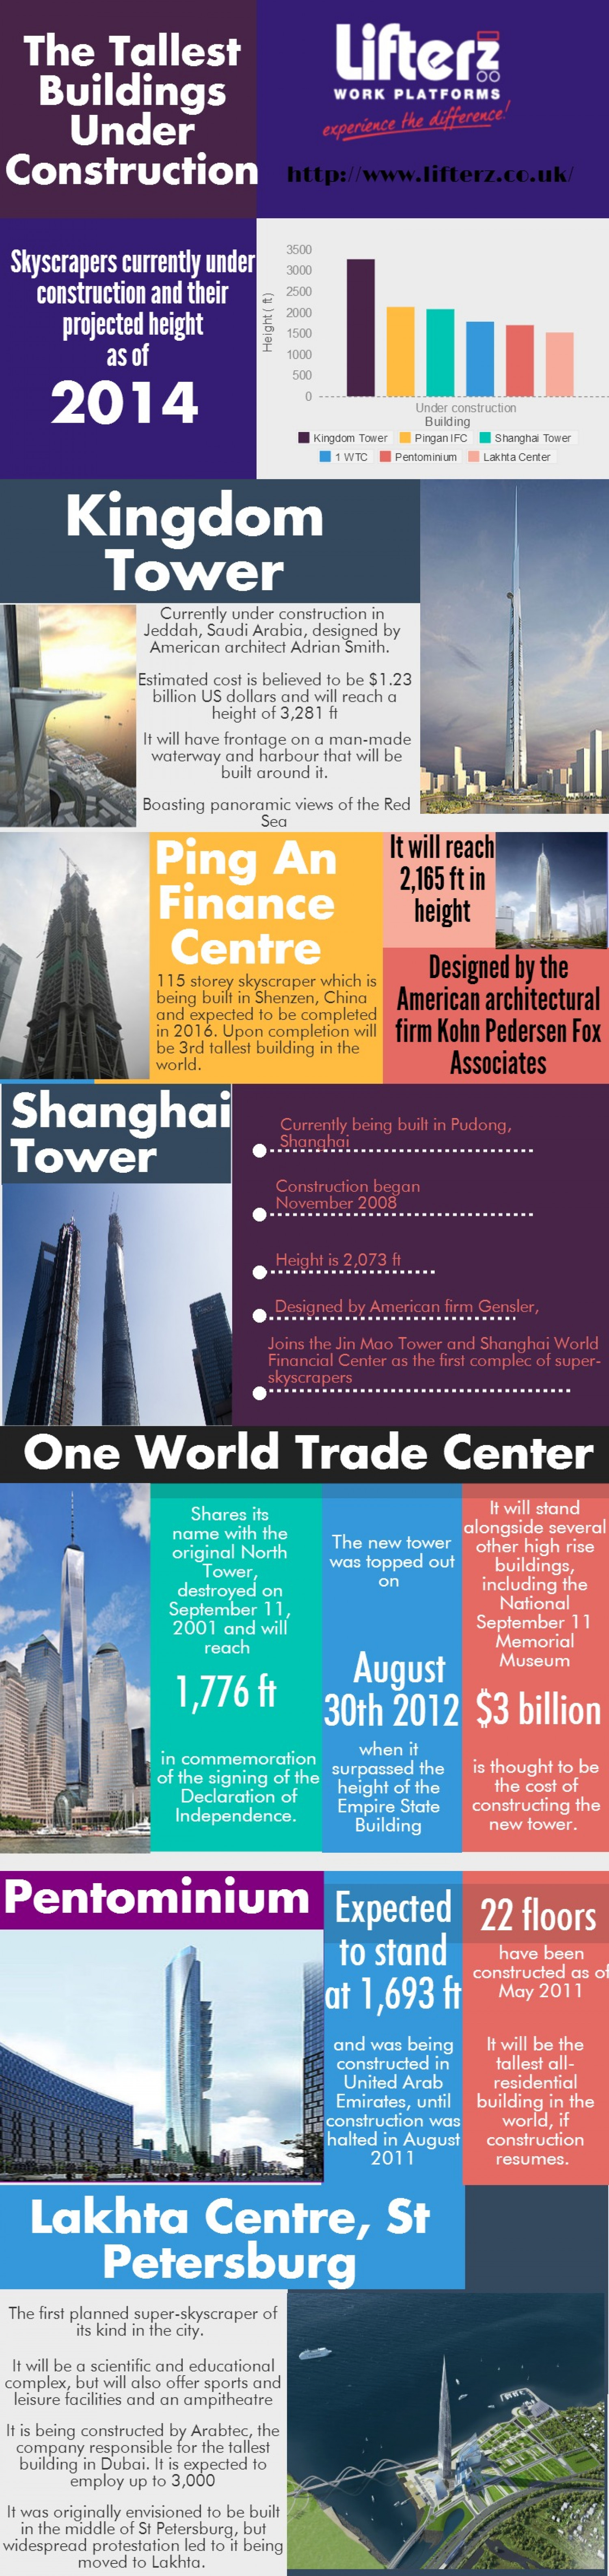 The Tallest Buildings Under Construction Infographic